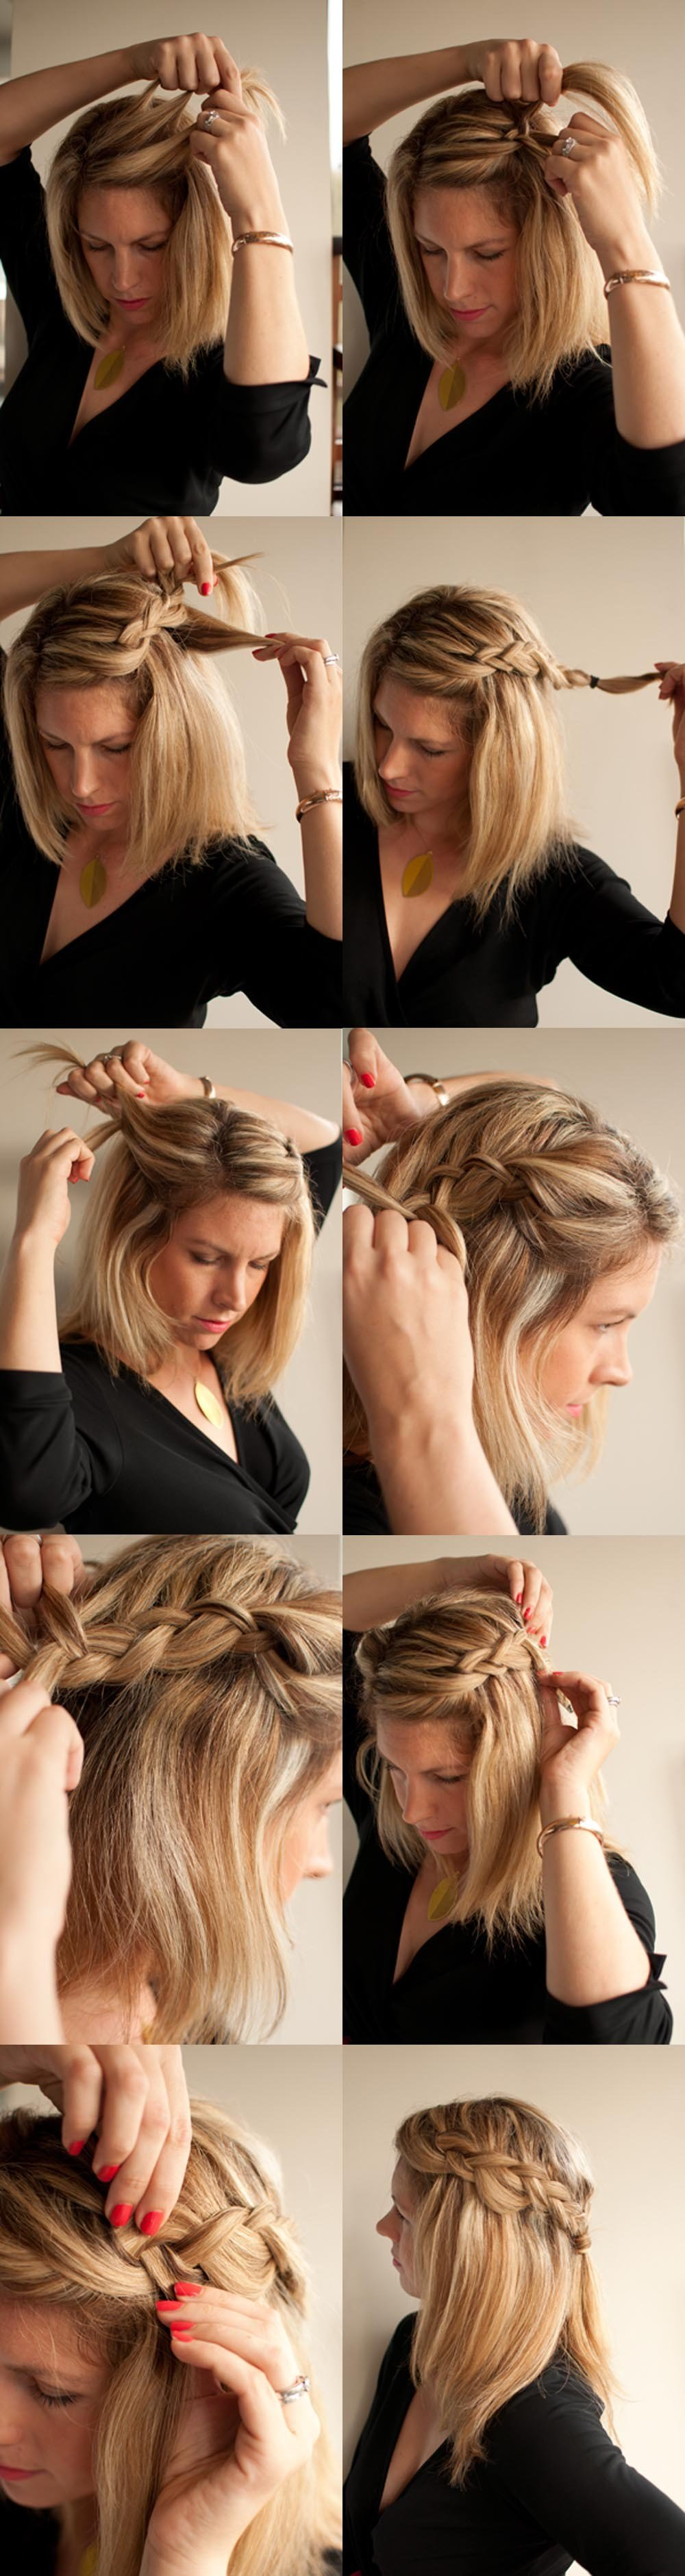 The Best How To Easy Braid Hairstyle – Hair Romance Reader Question Pictures